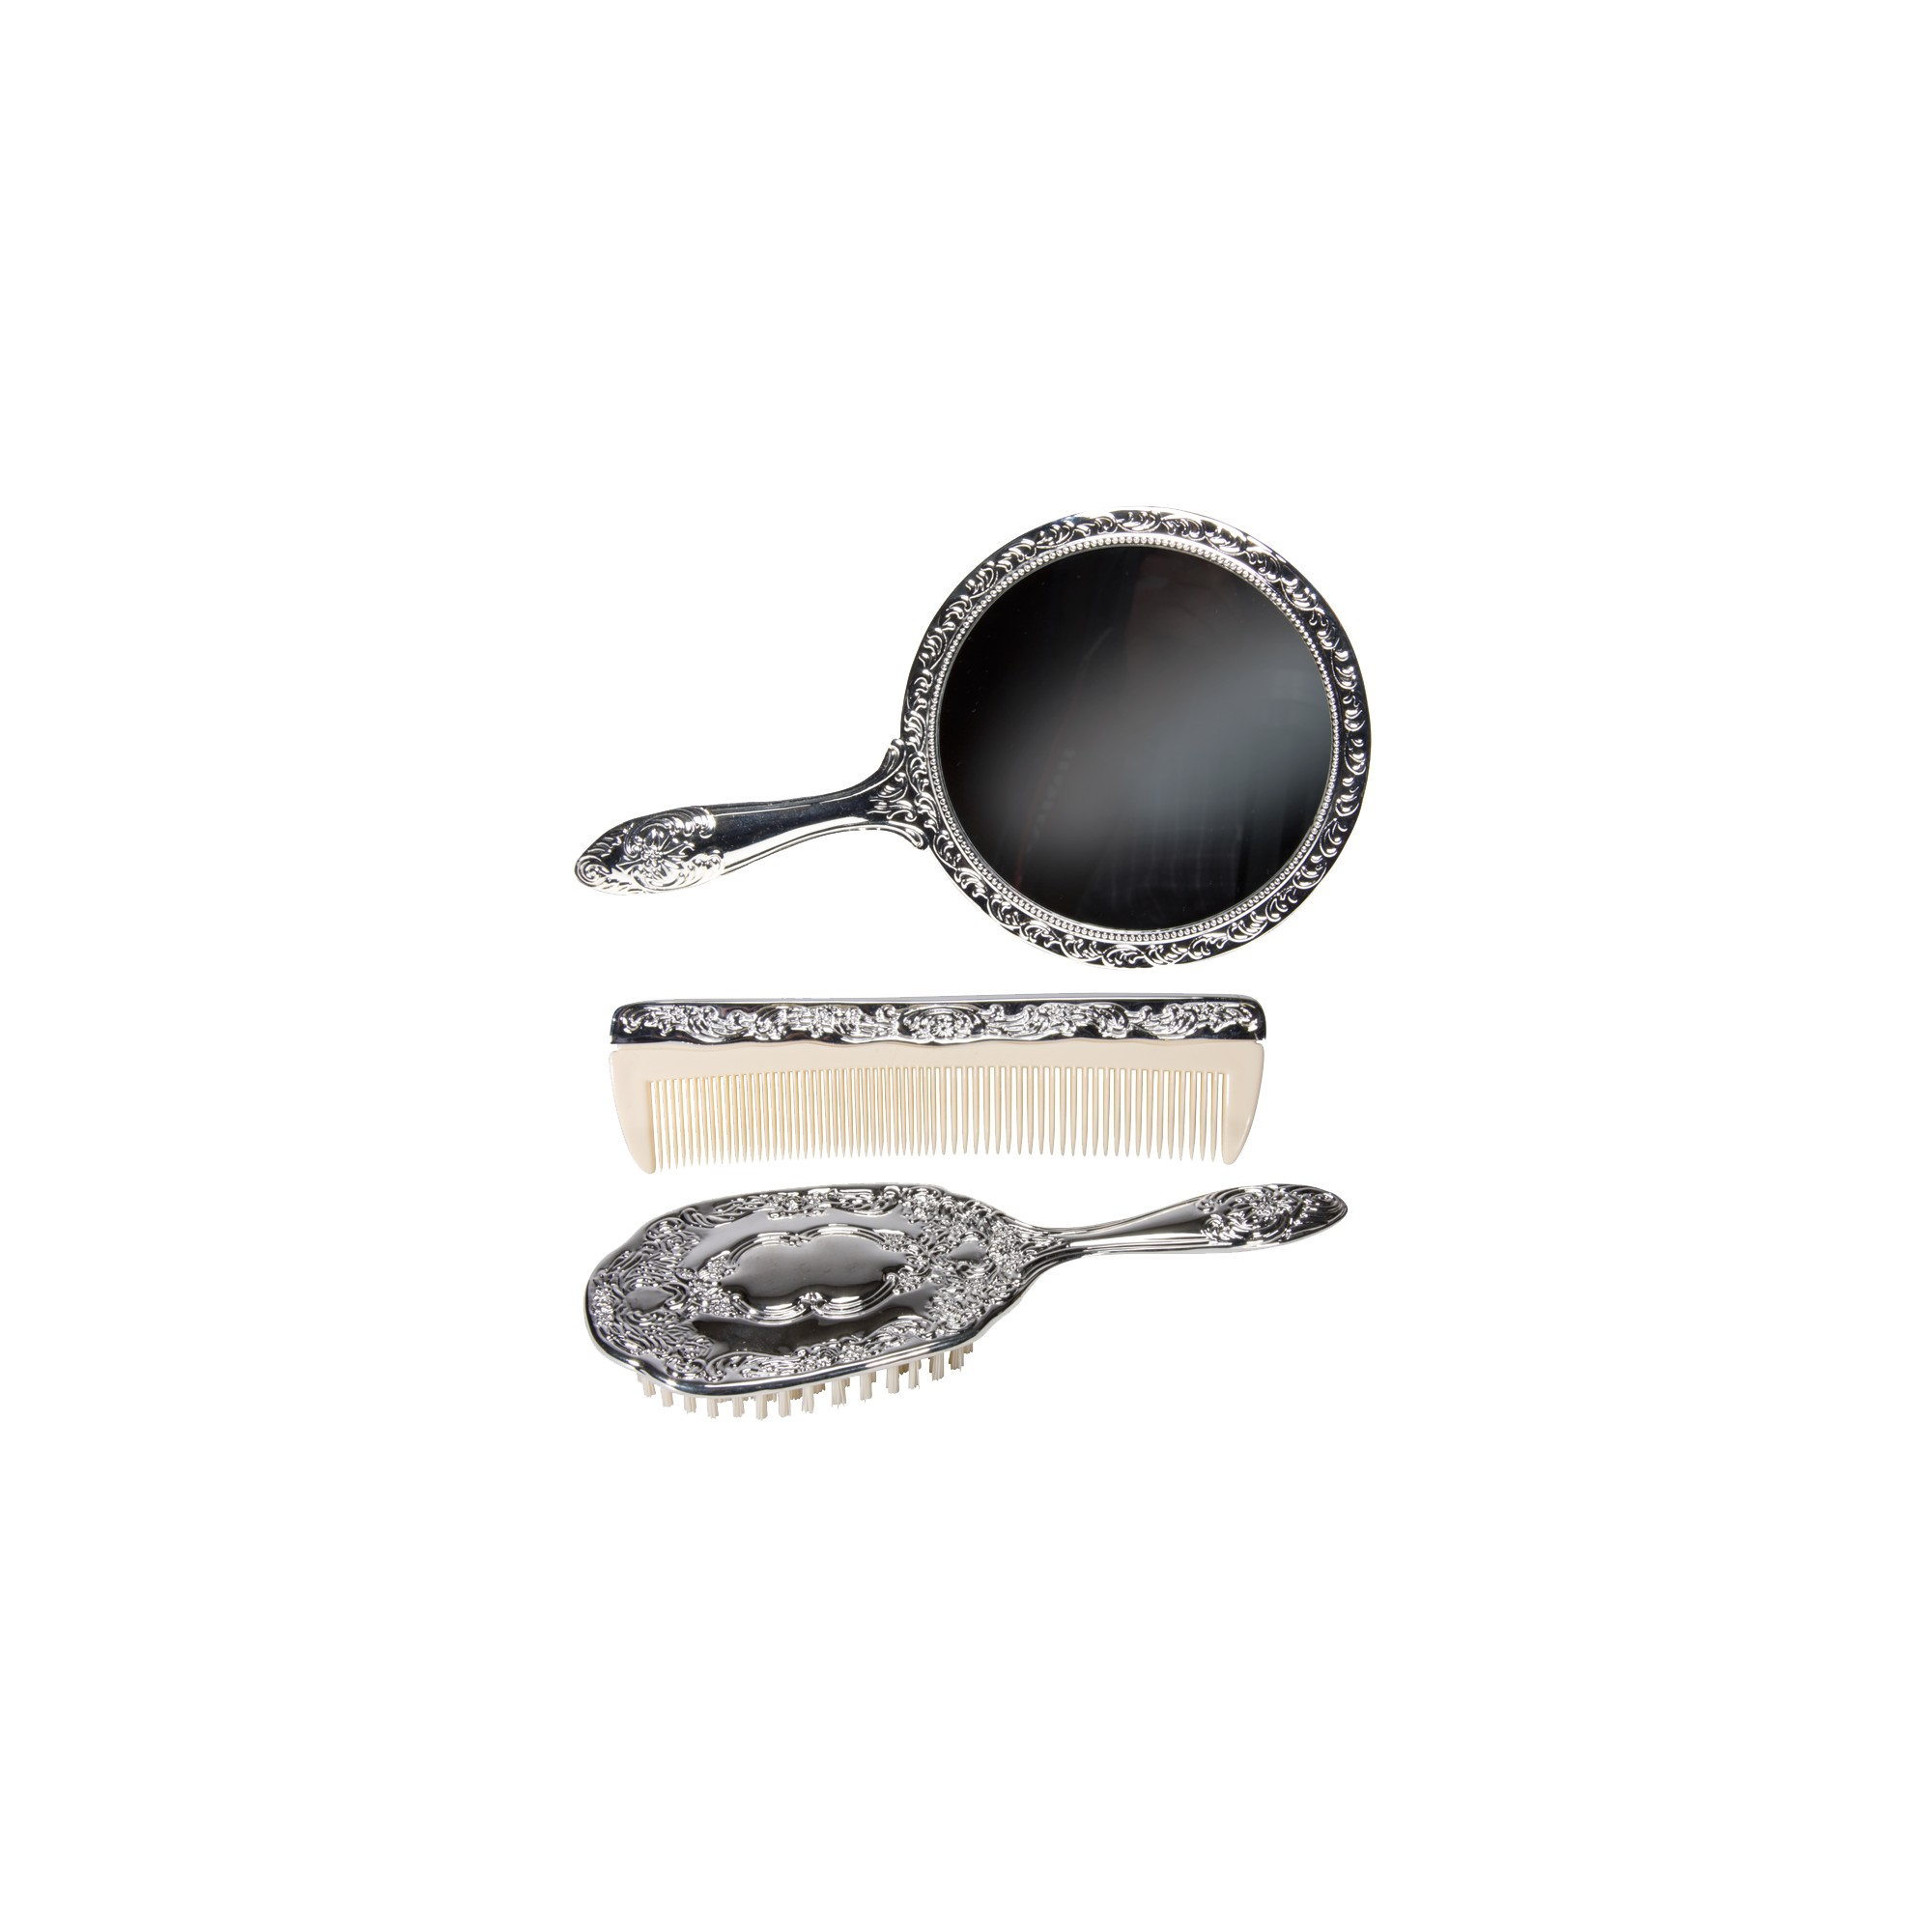 Harry Koenig Silver-Plated Vanity Set - 3 pc